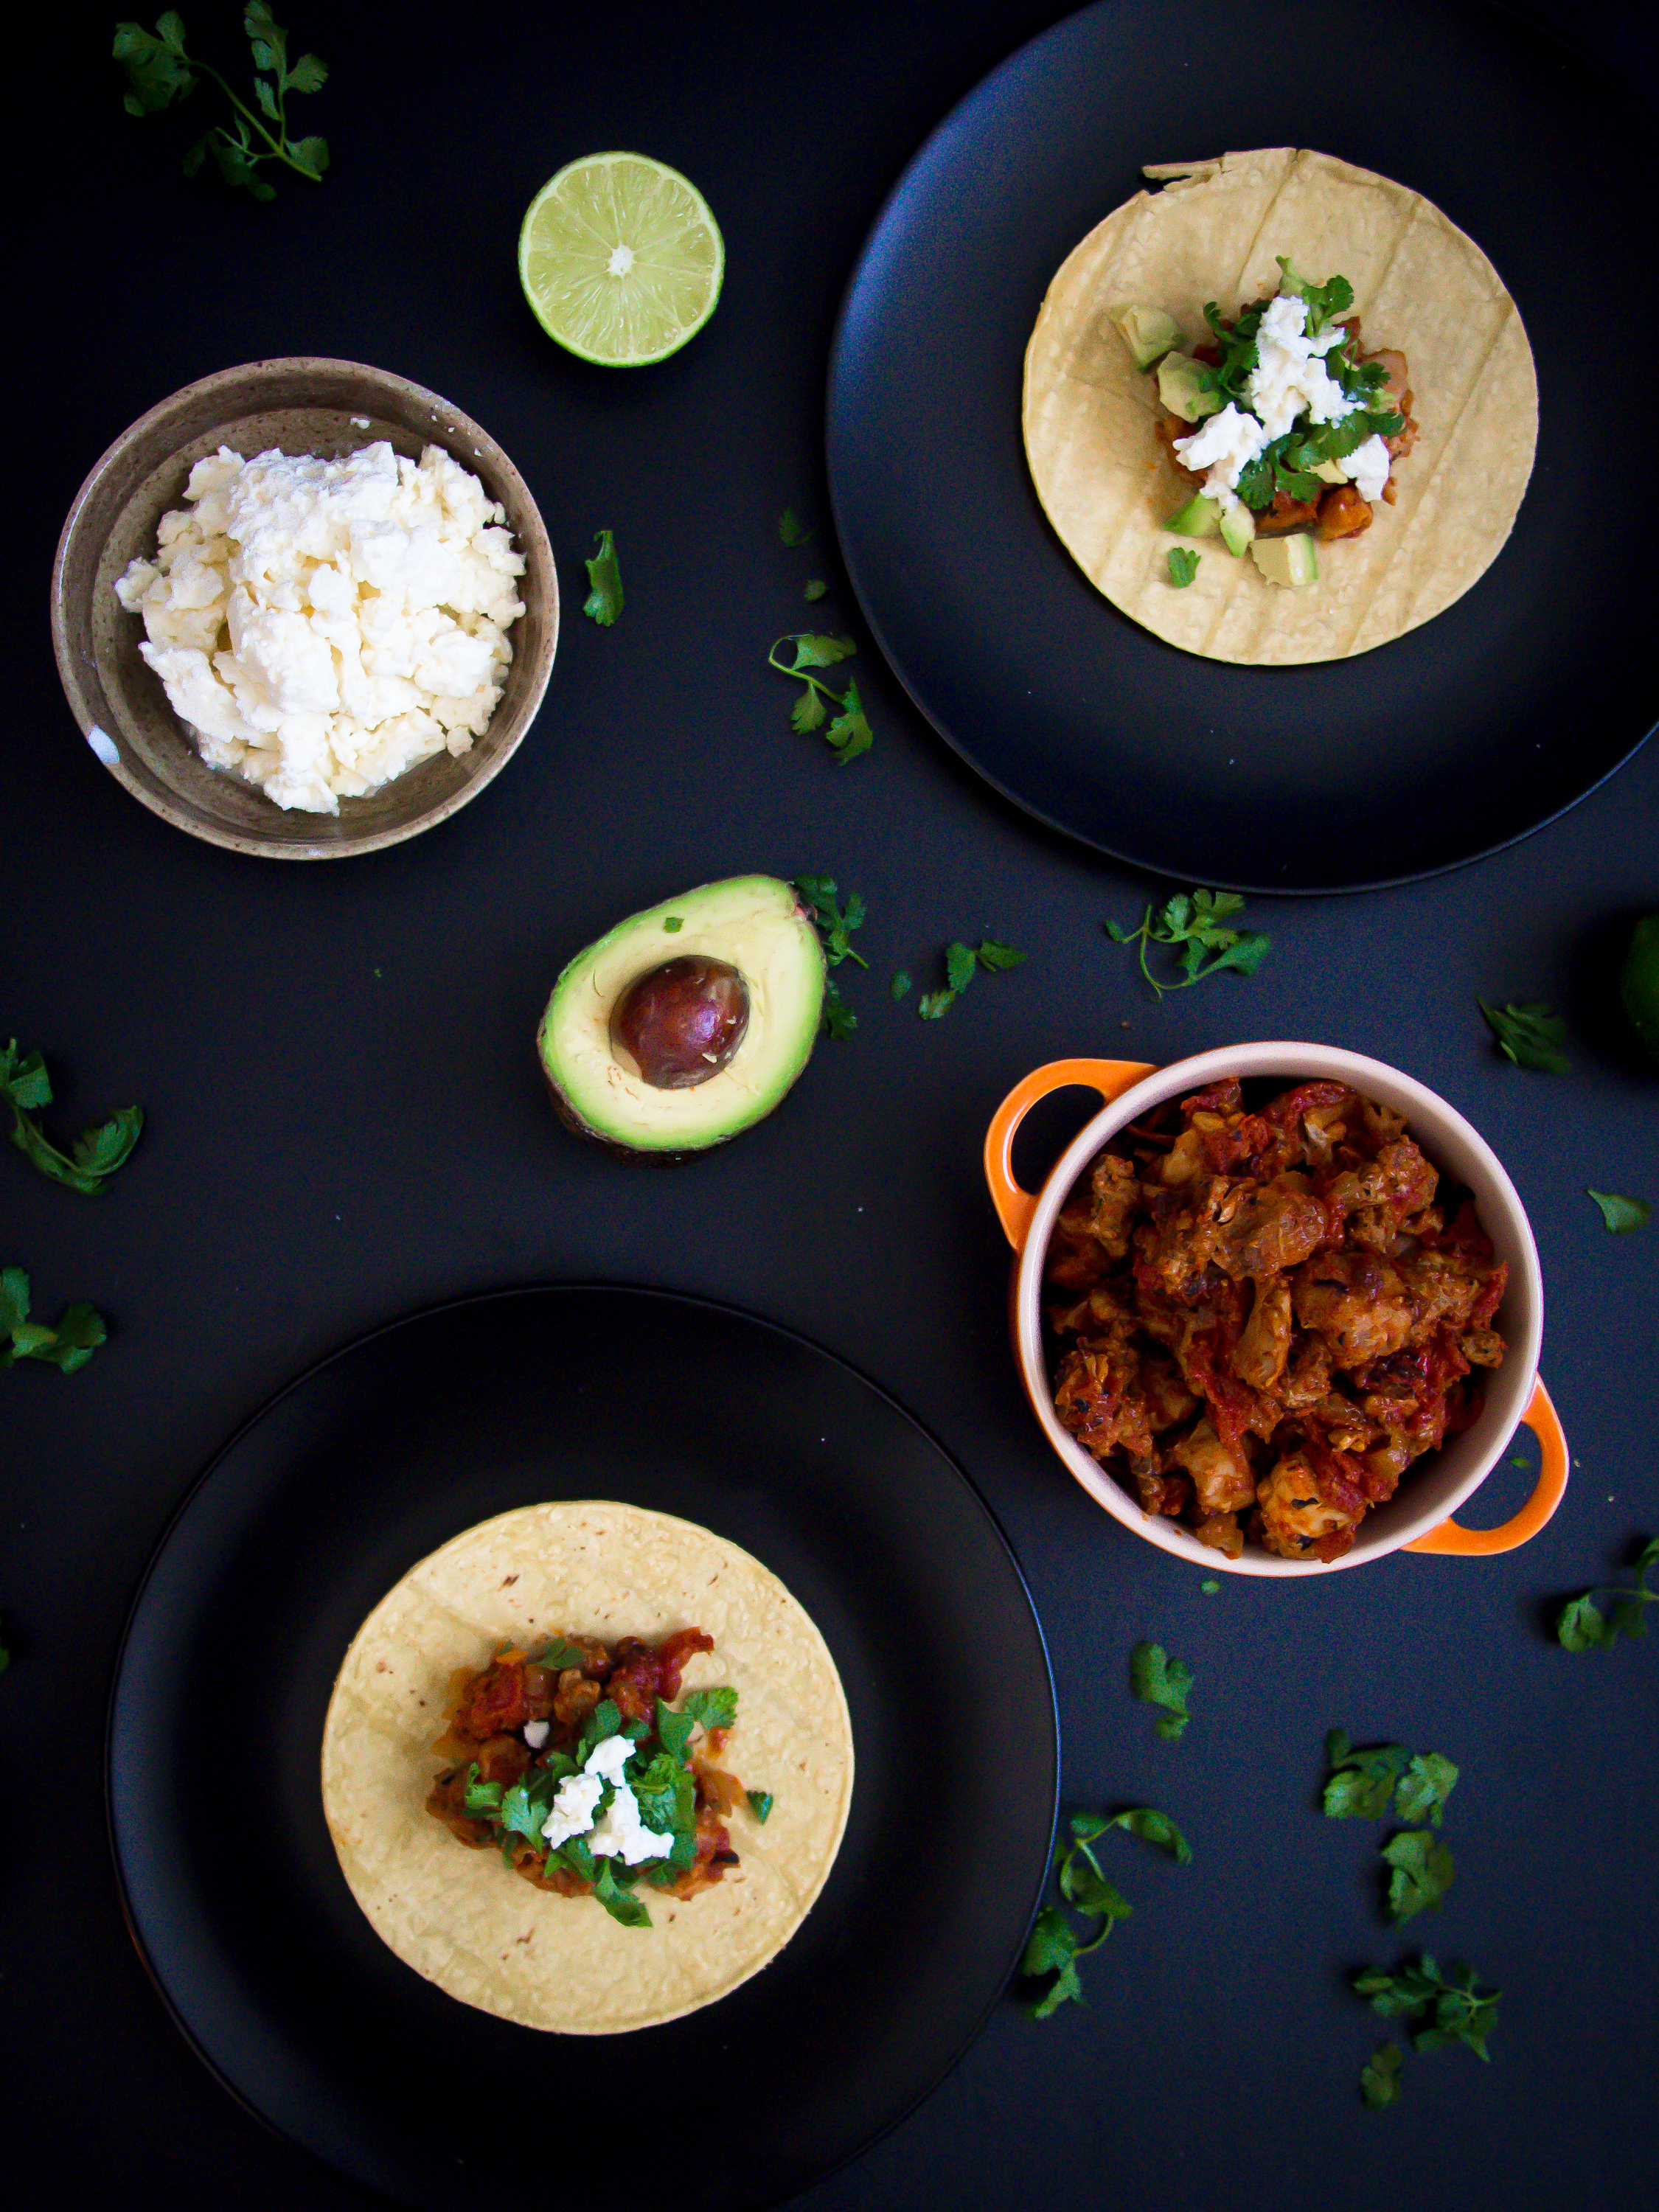 This chicken tinga is just one of the easy Cinco de Mayo recipes we're sharing - check out the rest!